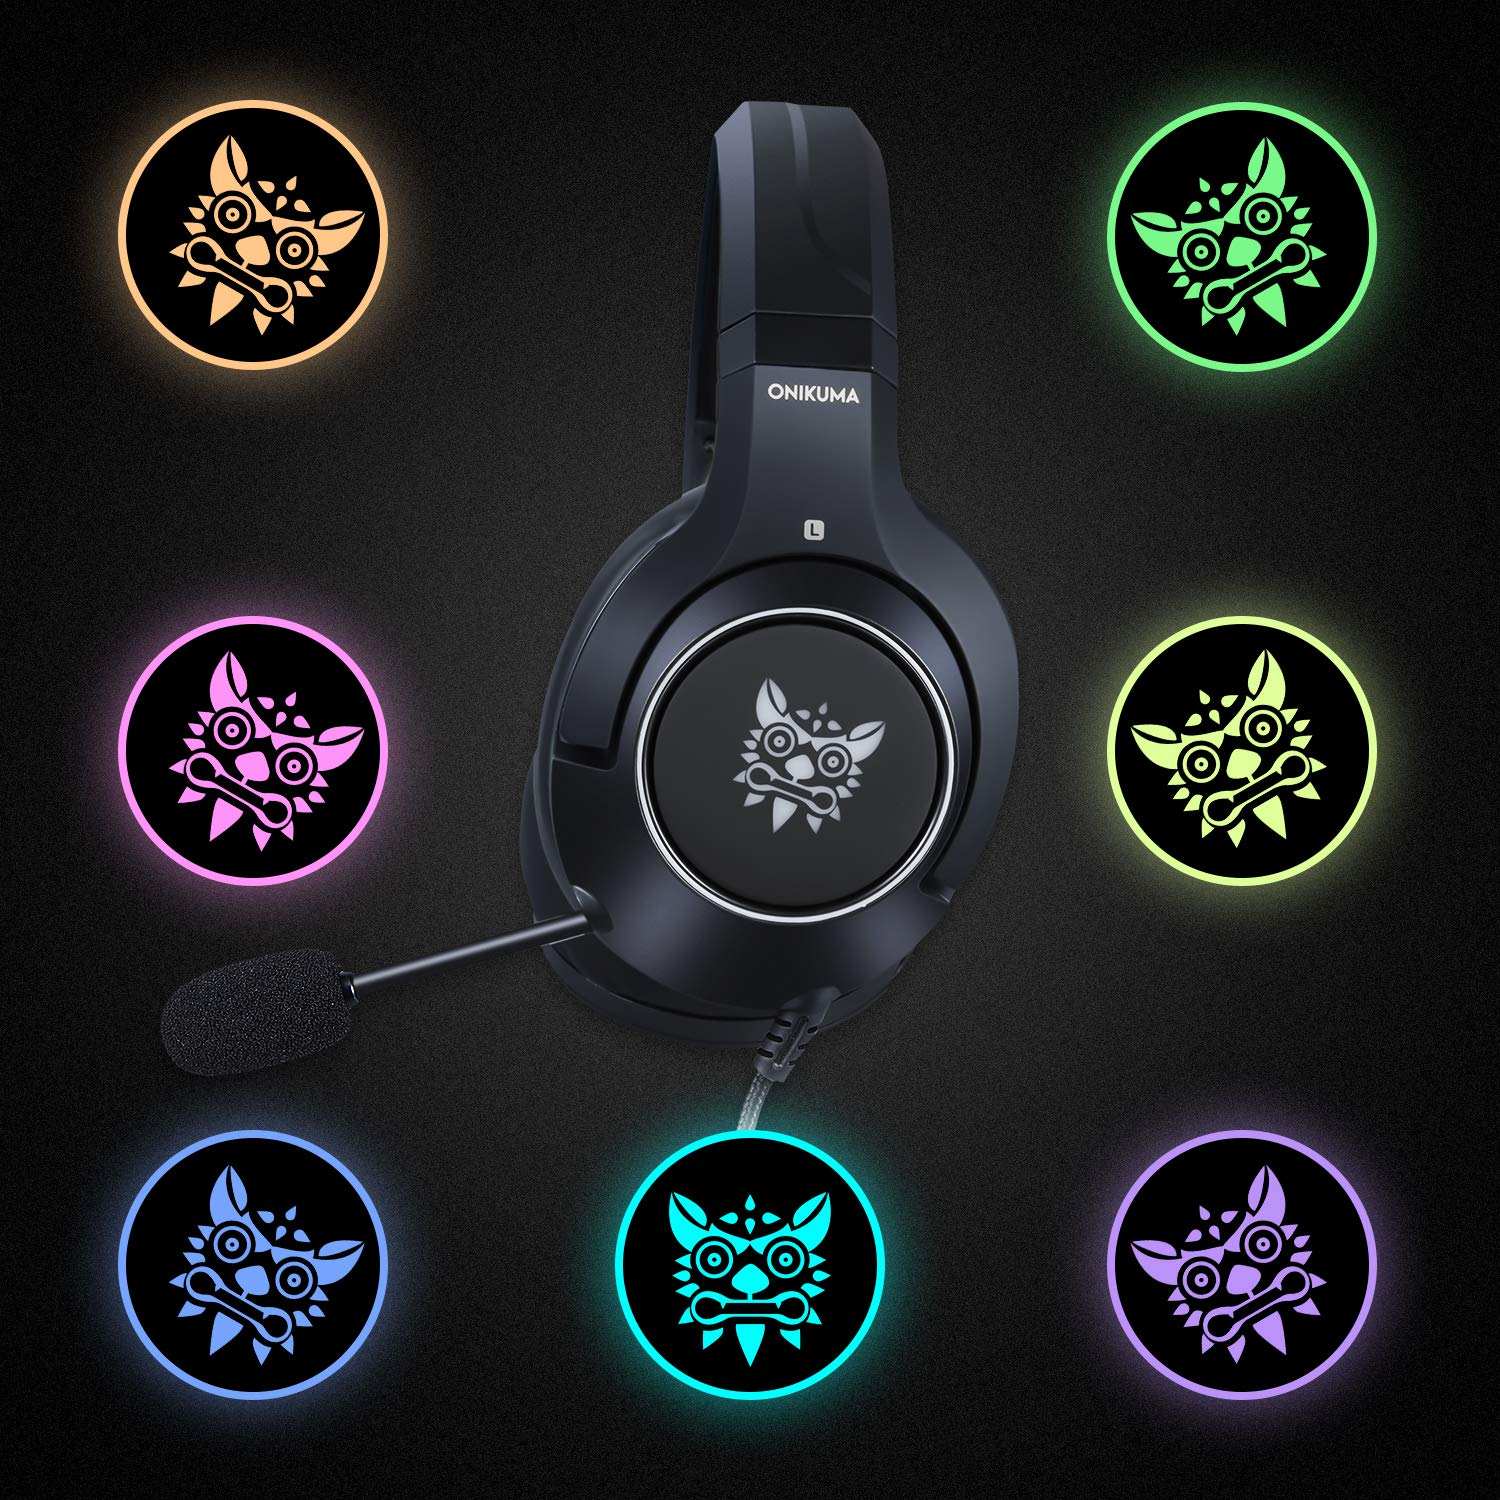 Gaming Headset-ONIKUMA Surround Sound PS4 Headphones with Retractable Mic Works with Xbox One PC,RGB LED & Lightweight Soft Earmuffs & Volume Control